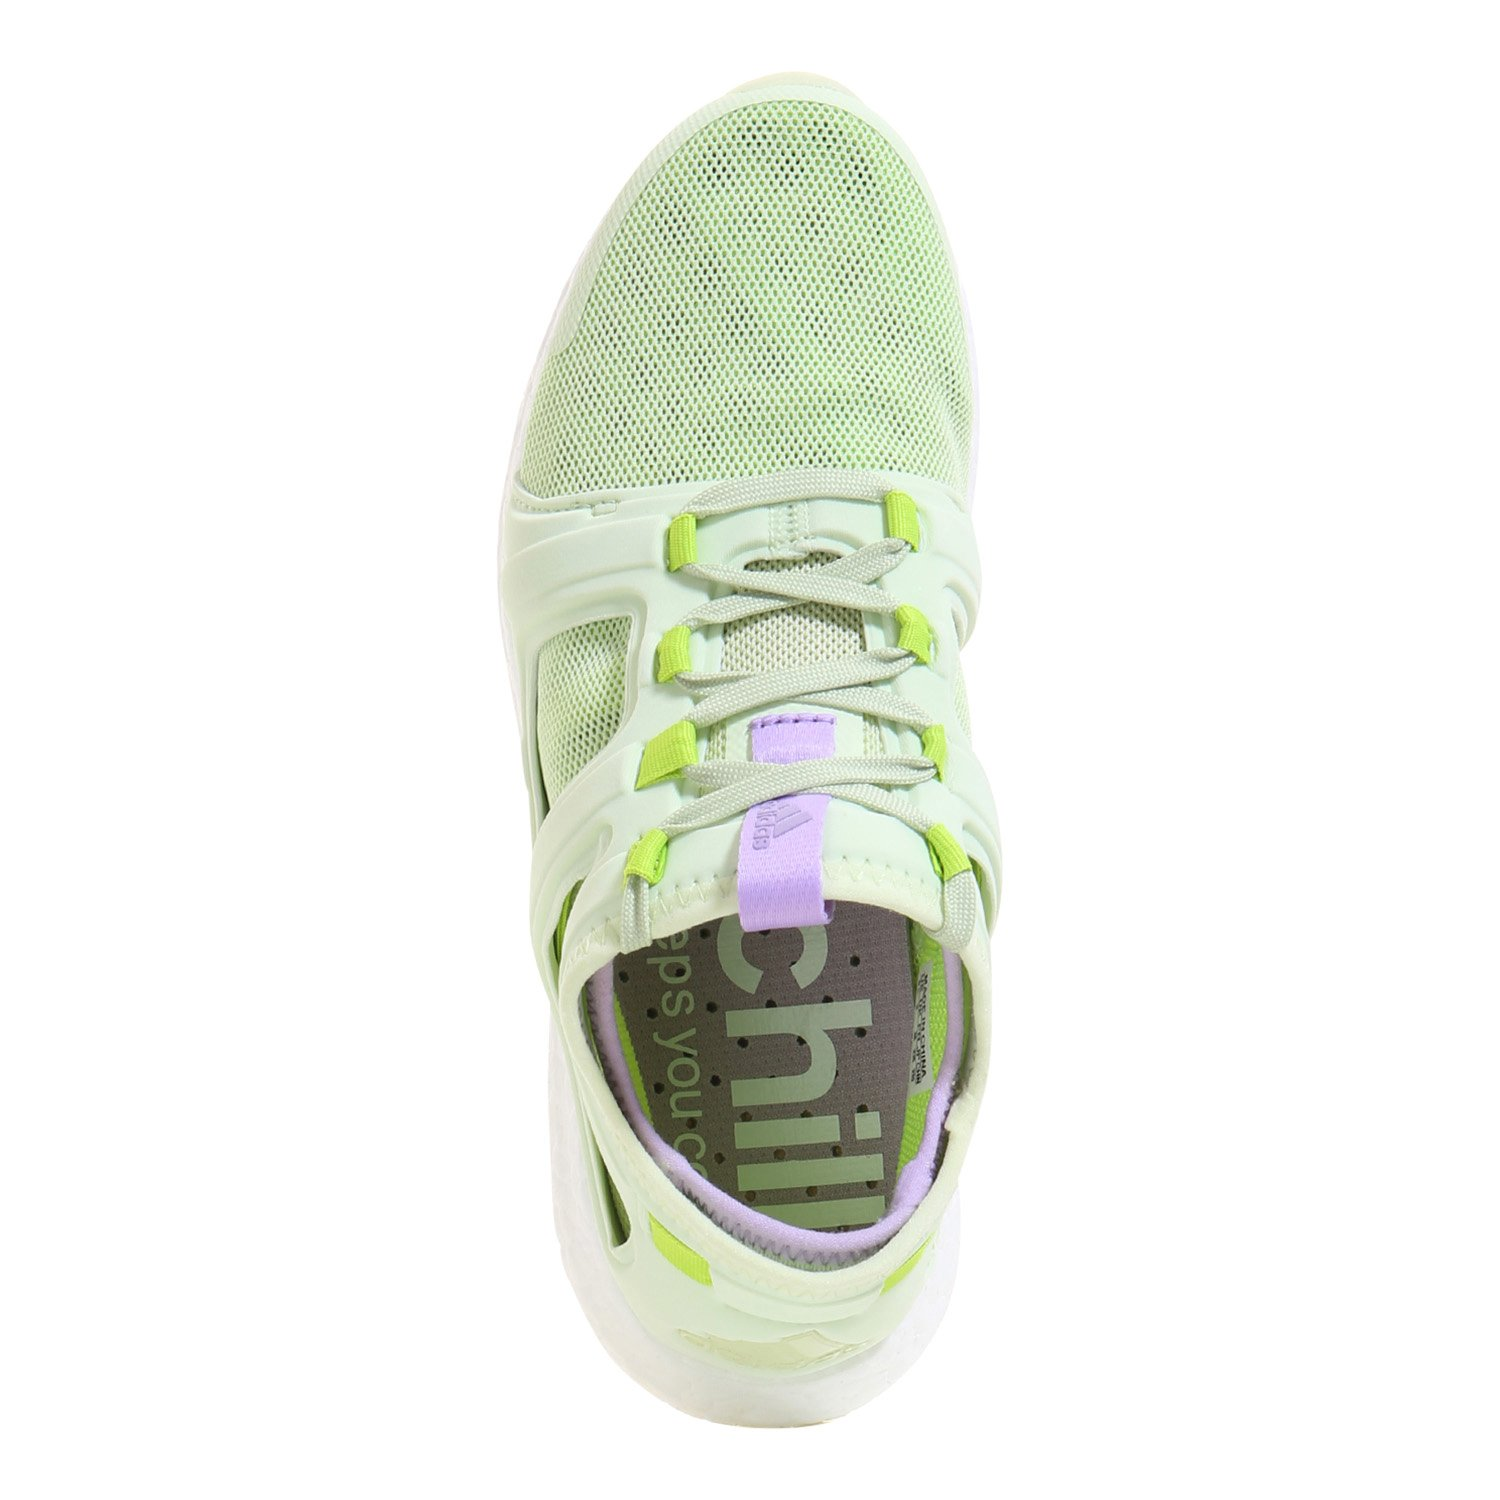 Adidas CC Rocket Boost Laufschuhe Damen Halo Slime-purple S16-semi Solar Slime-purple Halo Glow c57ad0